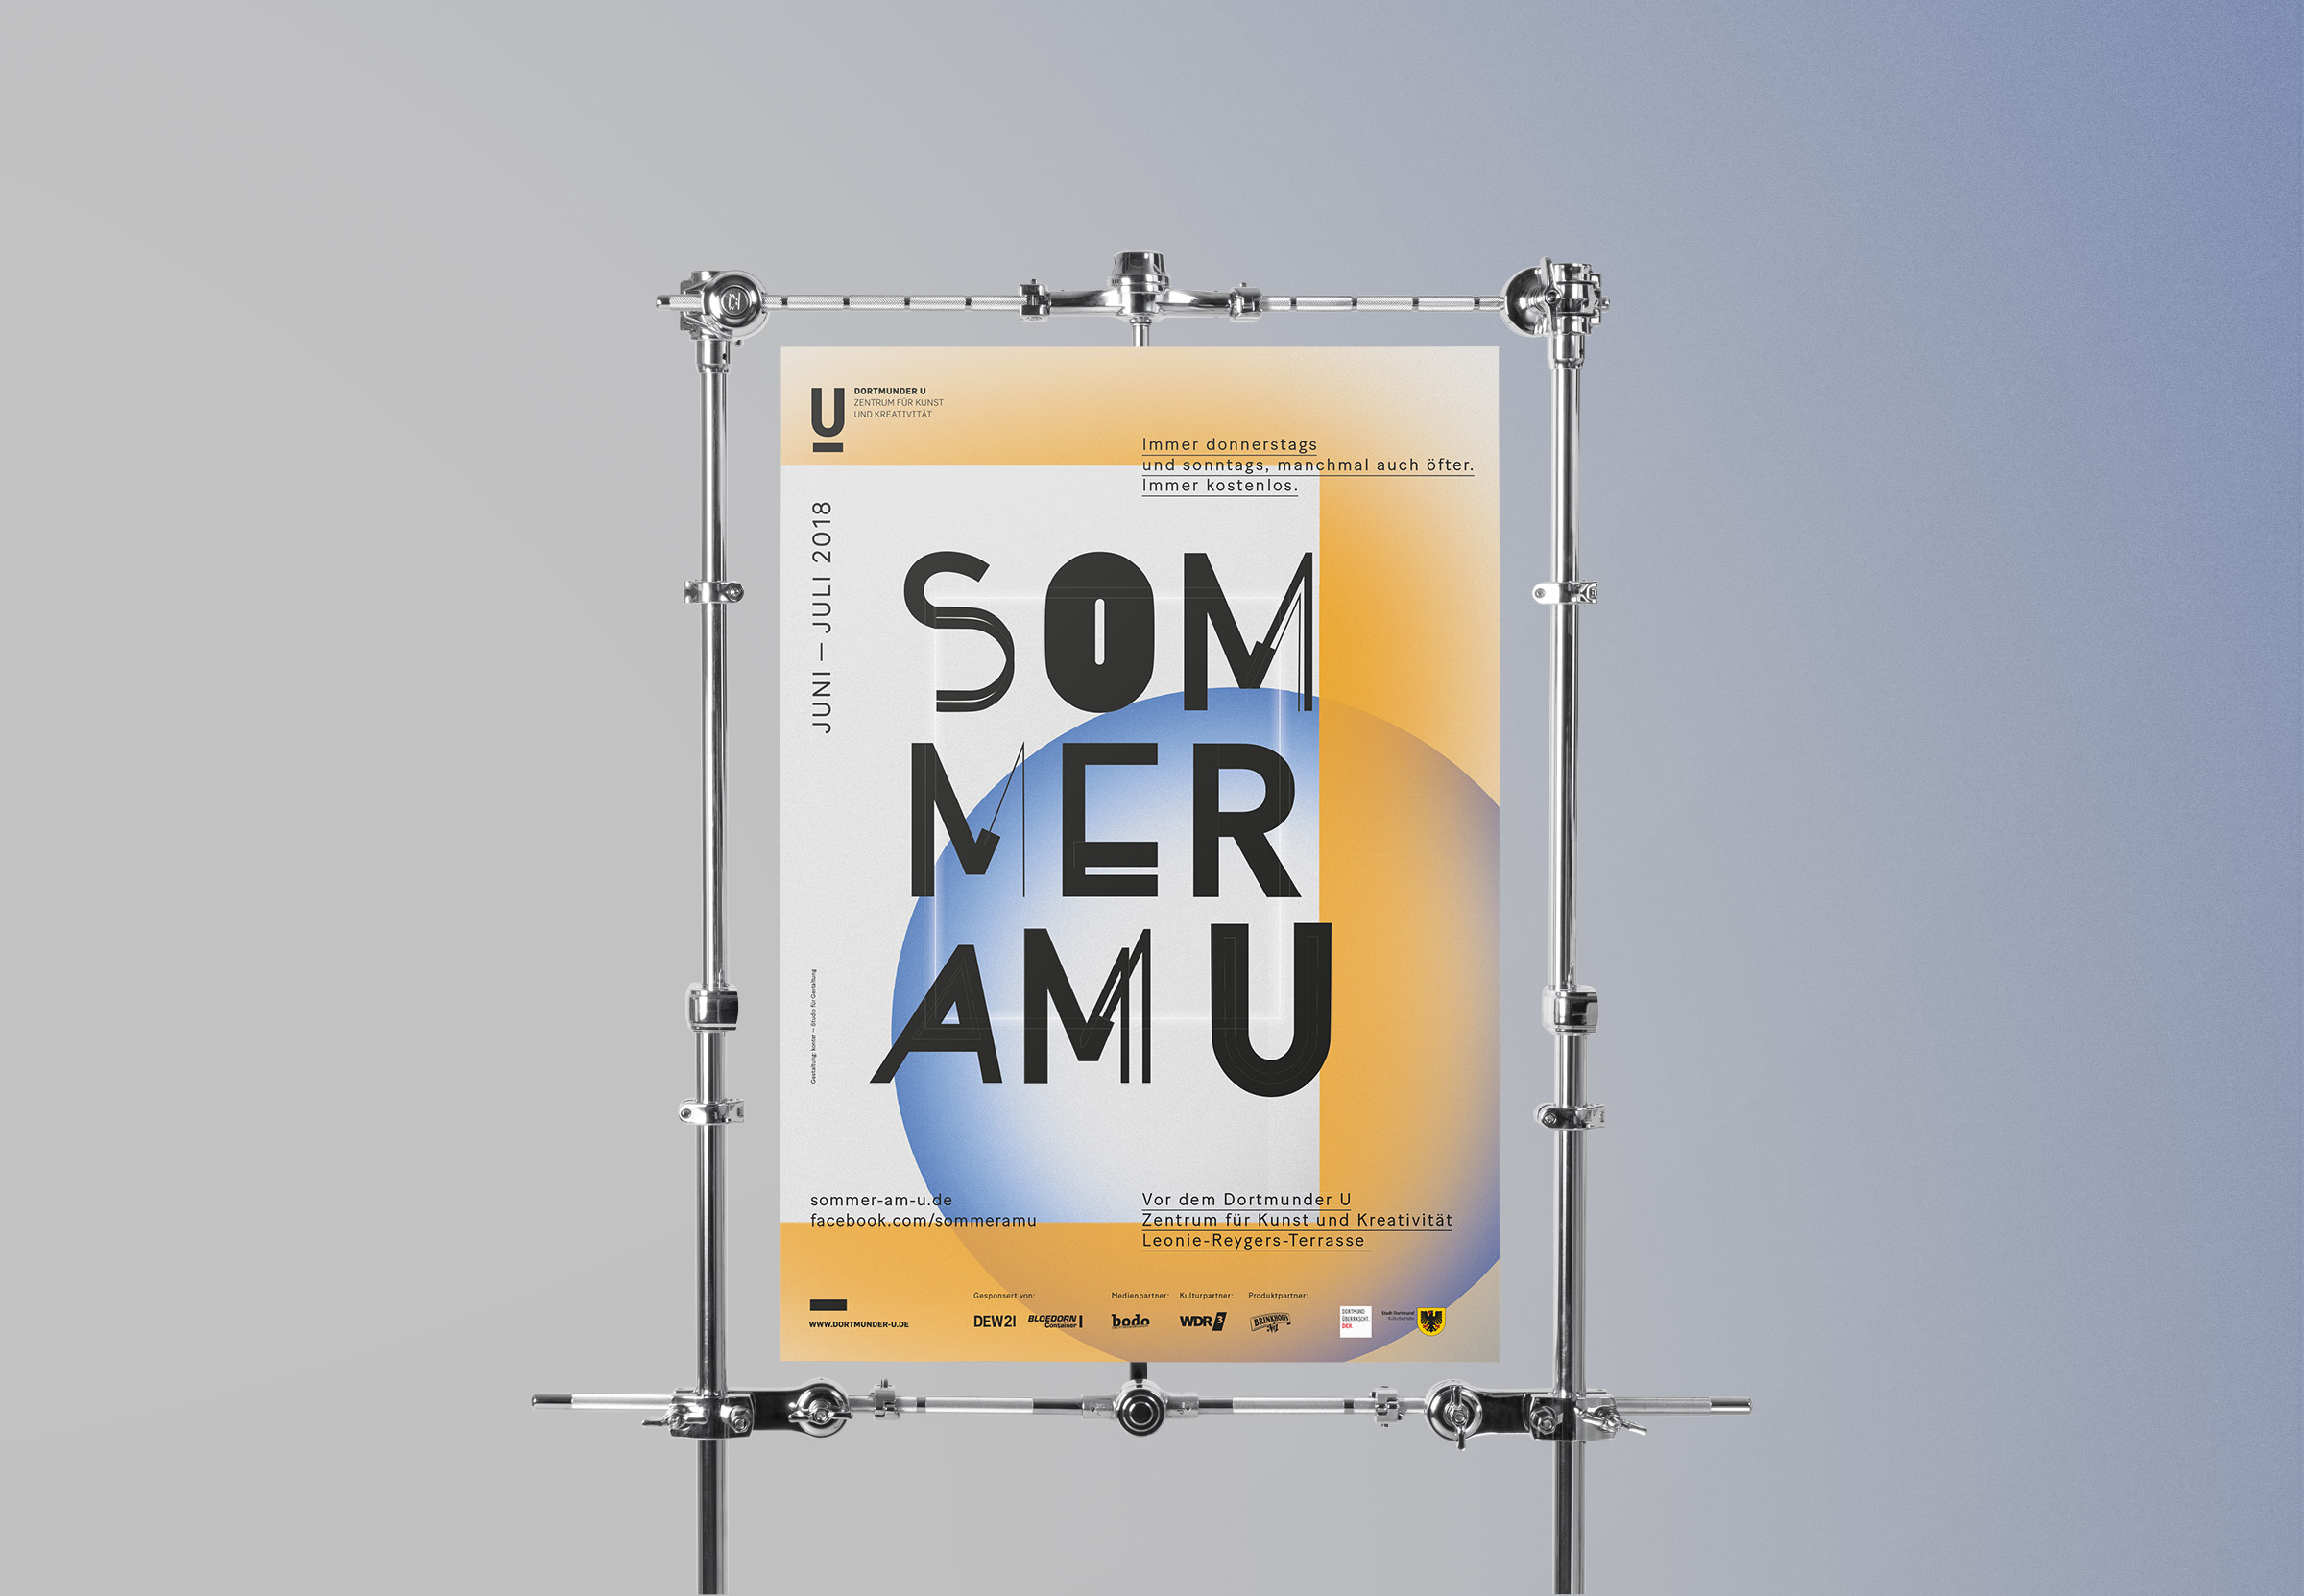 konter_Sommer am U_plakat_fin